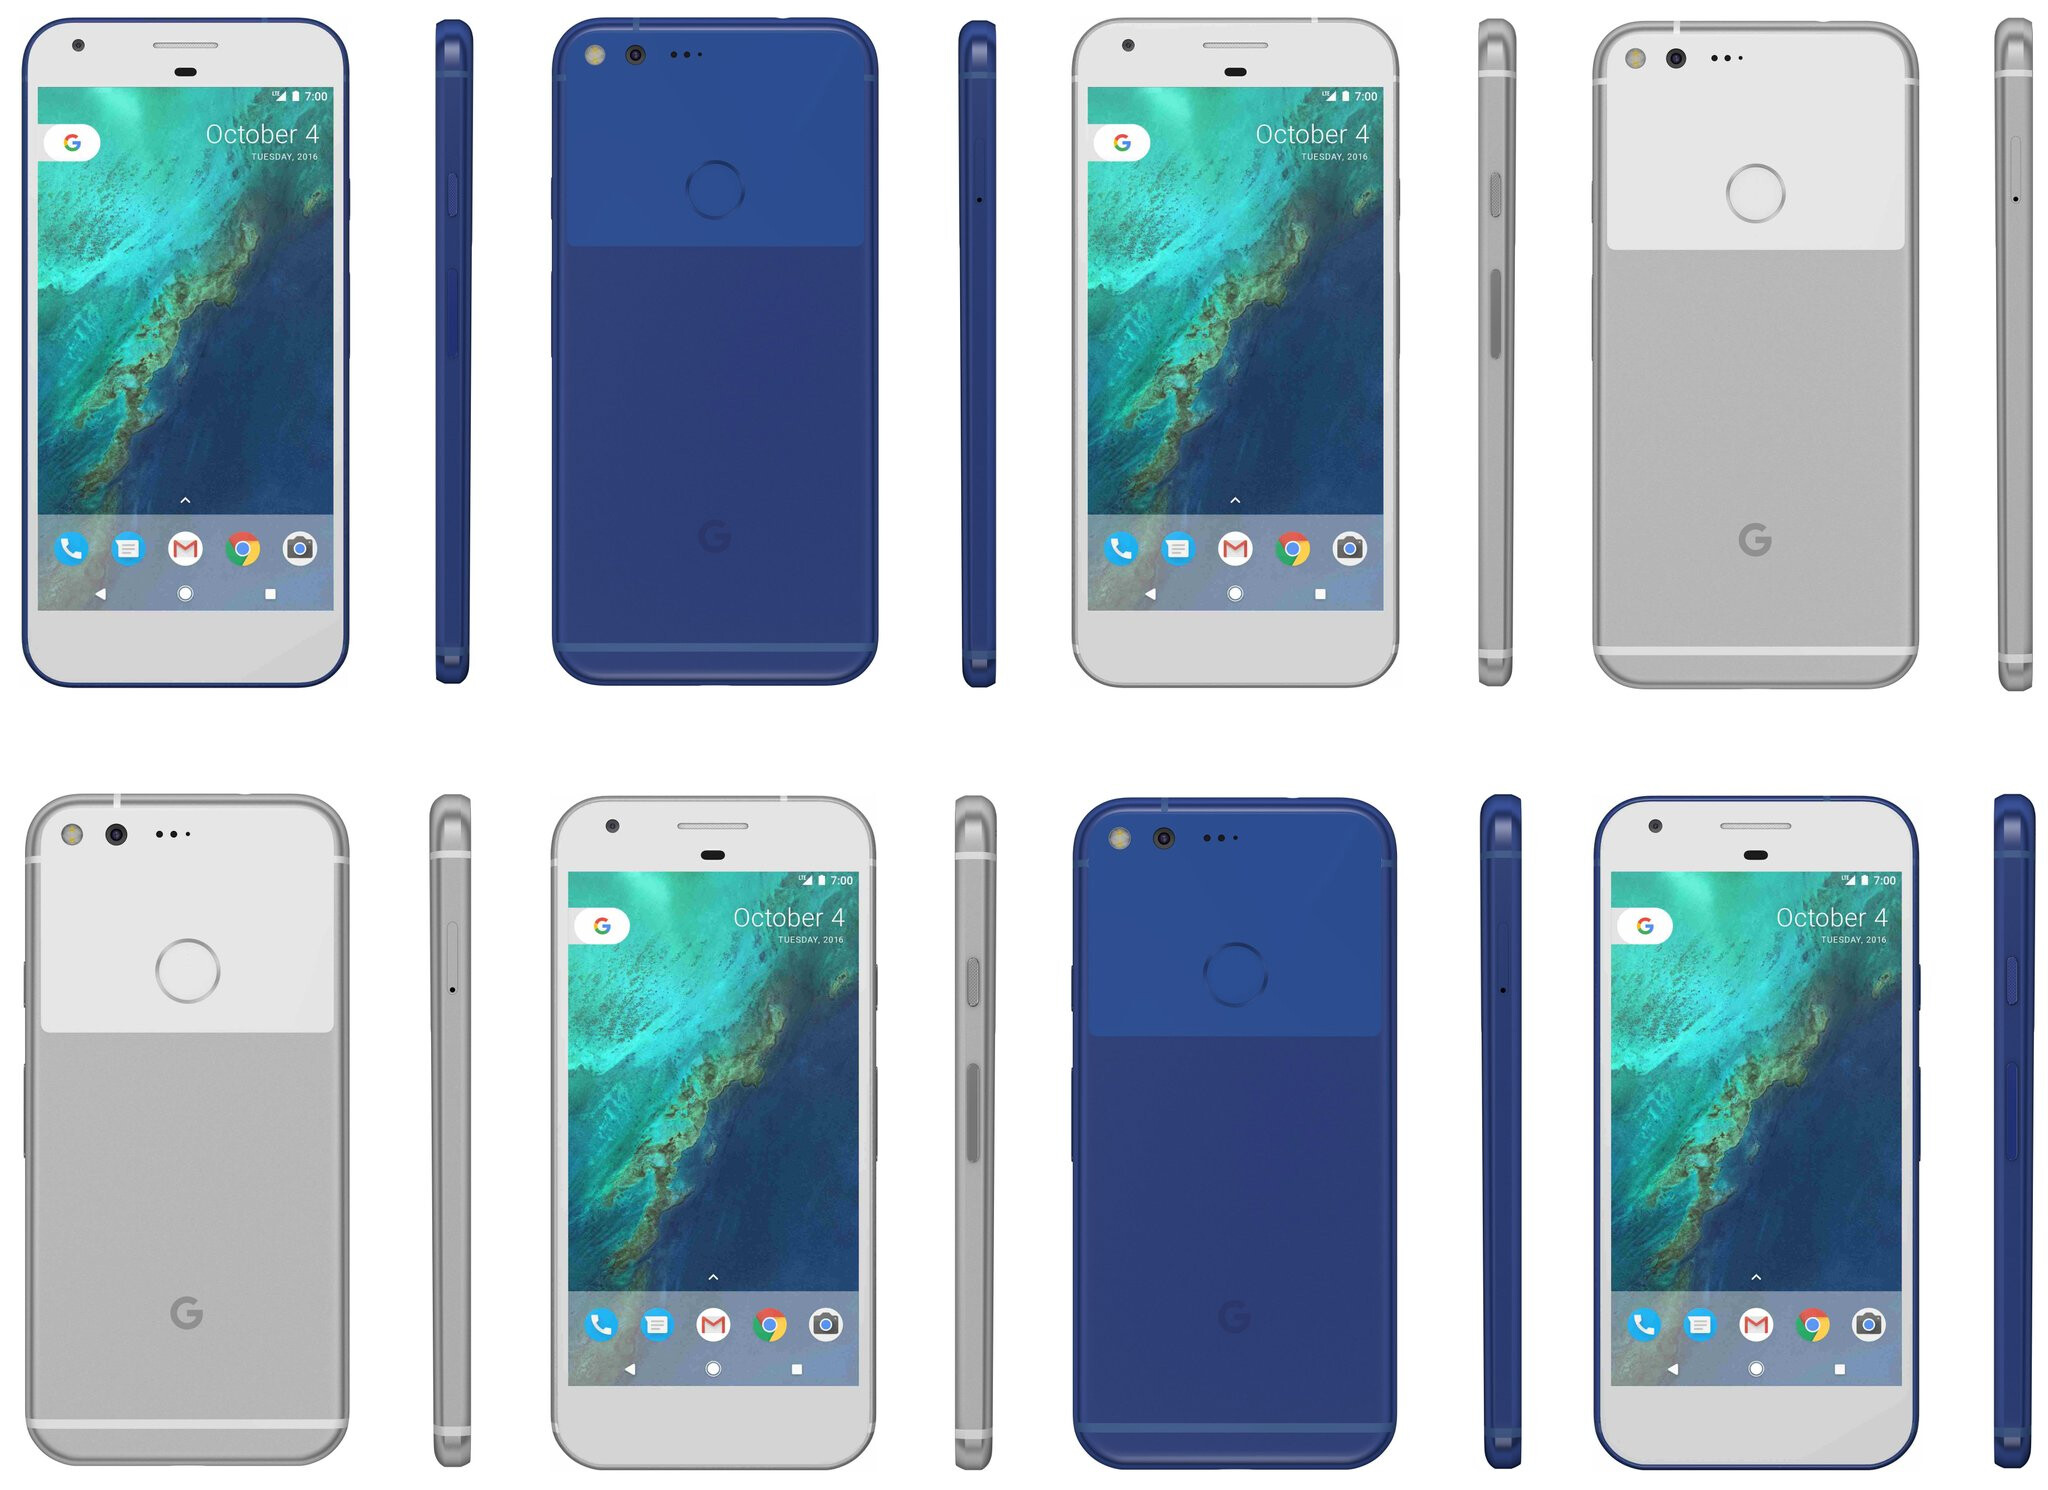 Google Pixel and Pixel XL appear in an awesome blue color ...